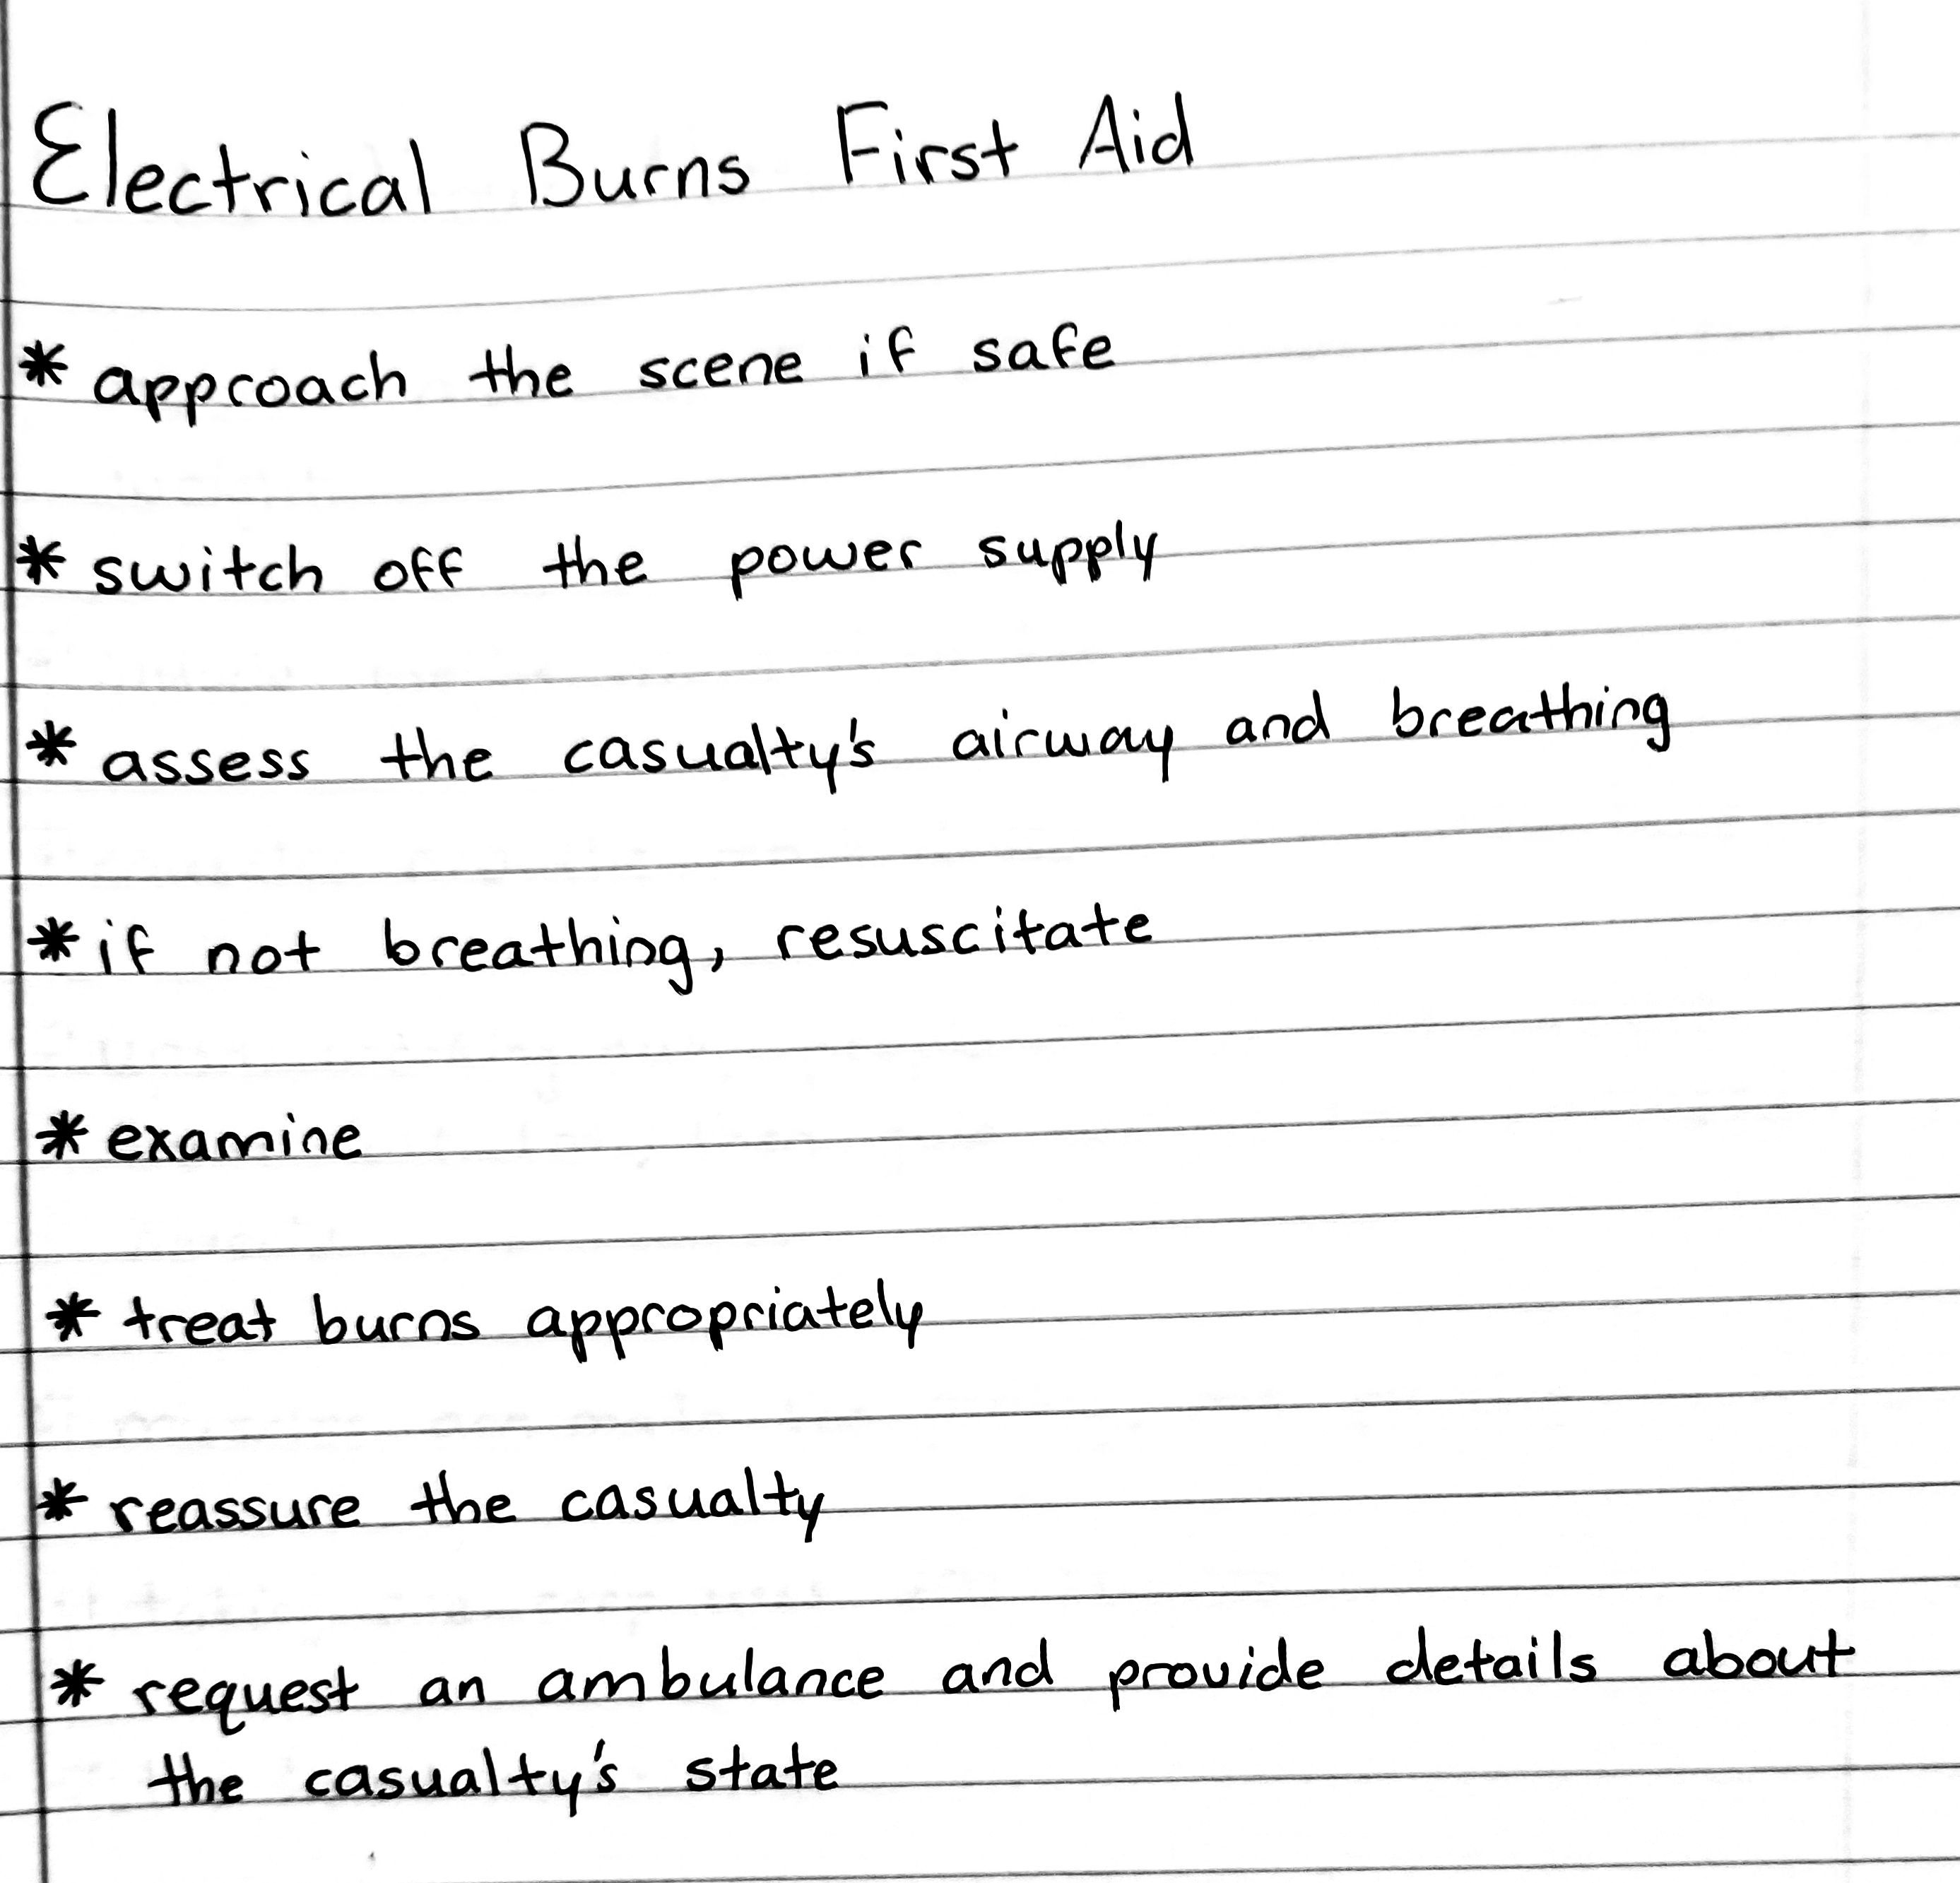 Electrical Burns First Aid